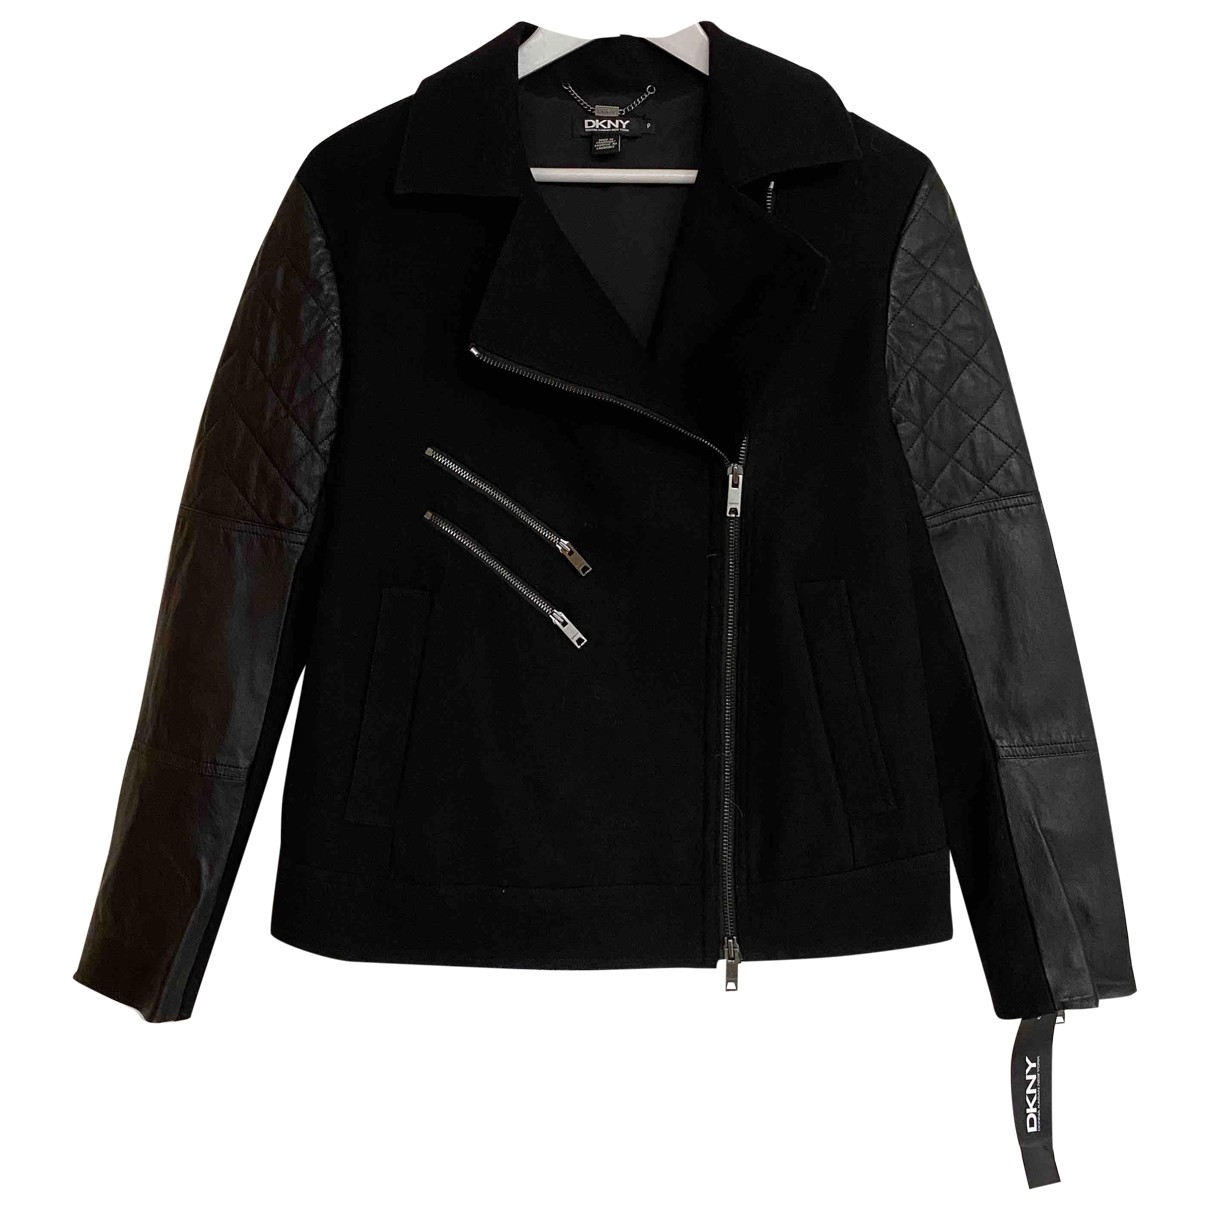 Dkny \N Black Wool Leather jacket for Women S International